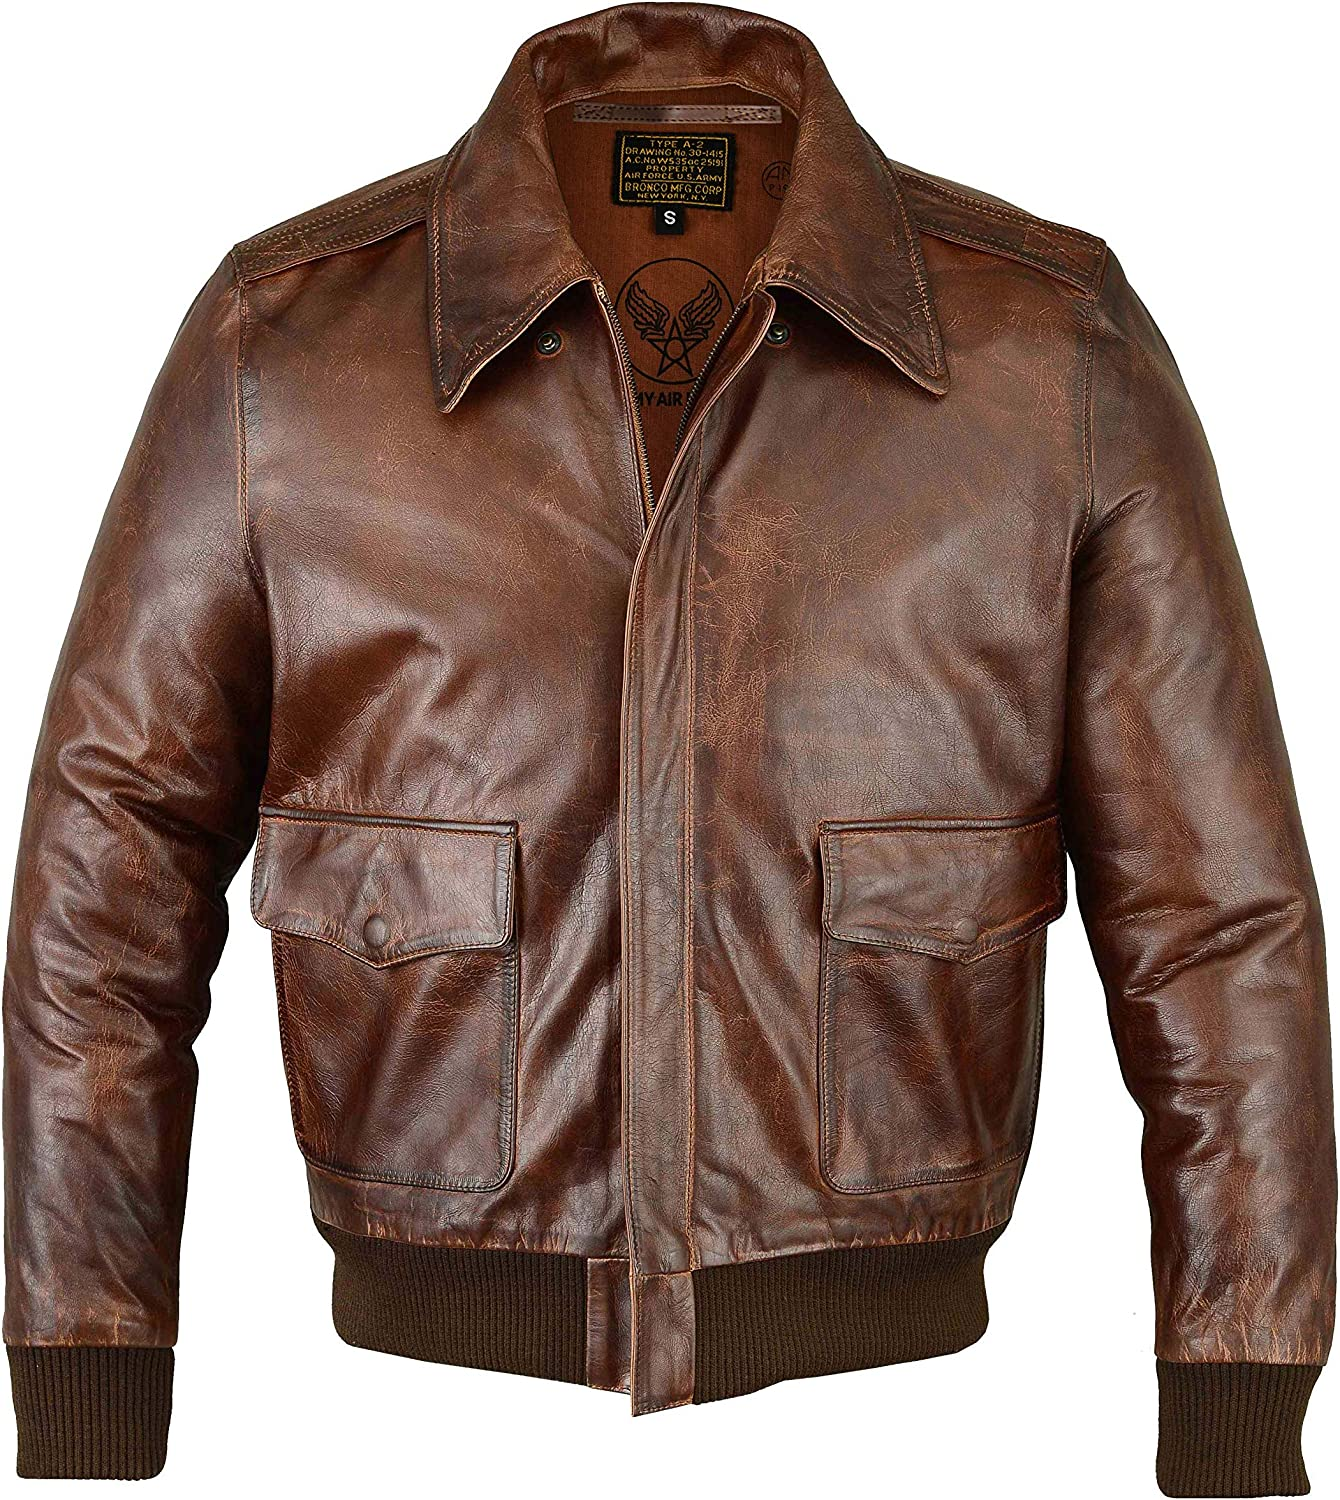 60s 70s Men's Jackets & Sweaters FiveStar Leathers Mens Air Force A-2 Leather Flight Bomber Jacket $149.50 AT vintagedancer.com